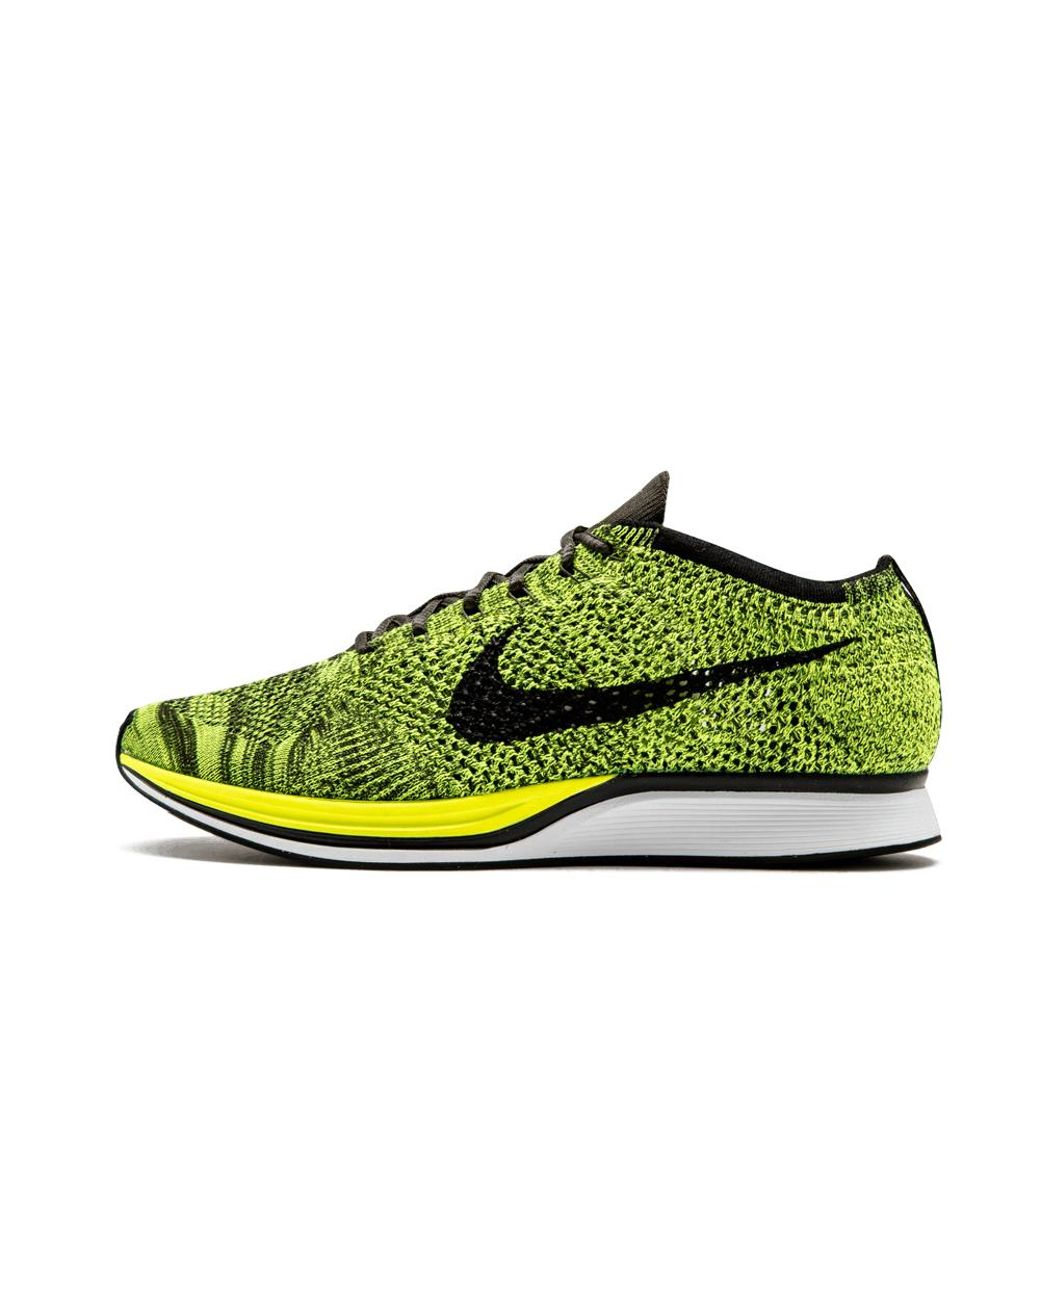 90d374191c5c0 Lyst - Nike Flyknit Racer in Yellow for Men - Save 14%